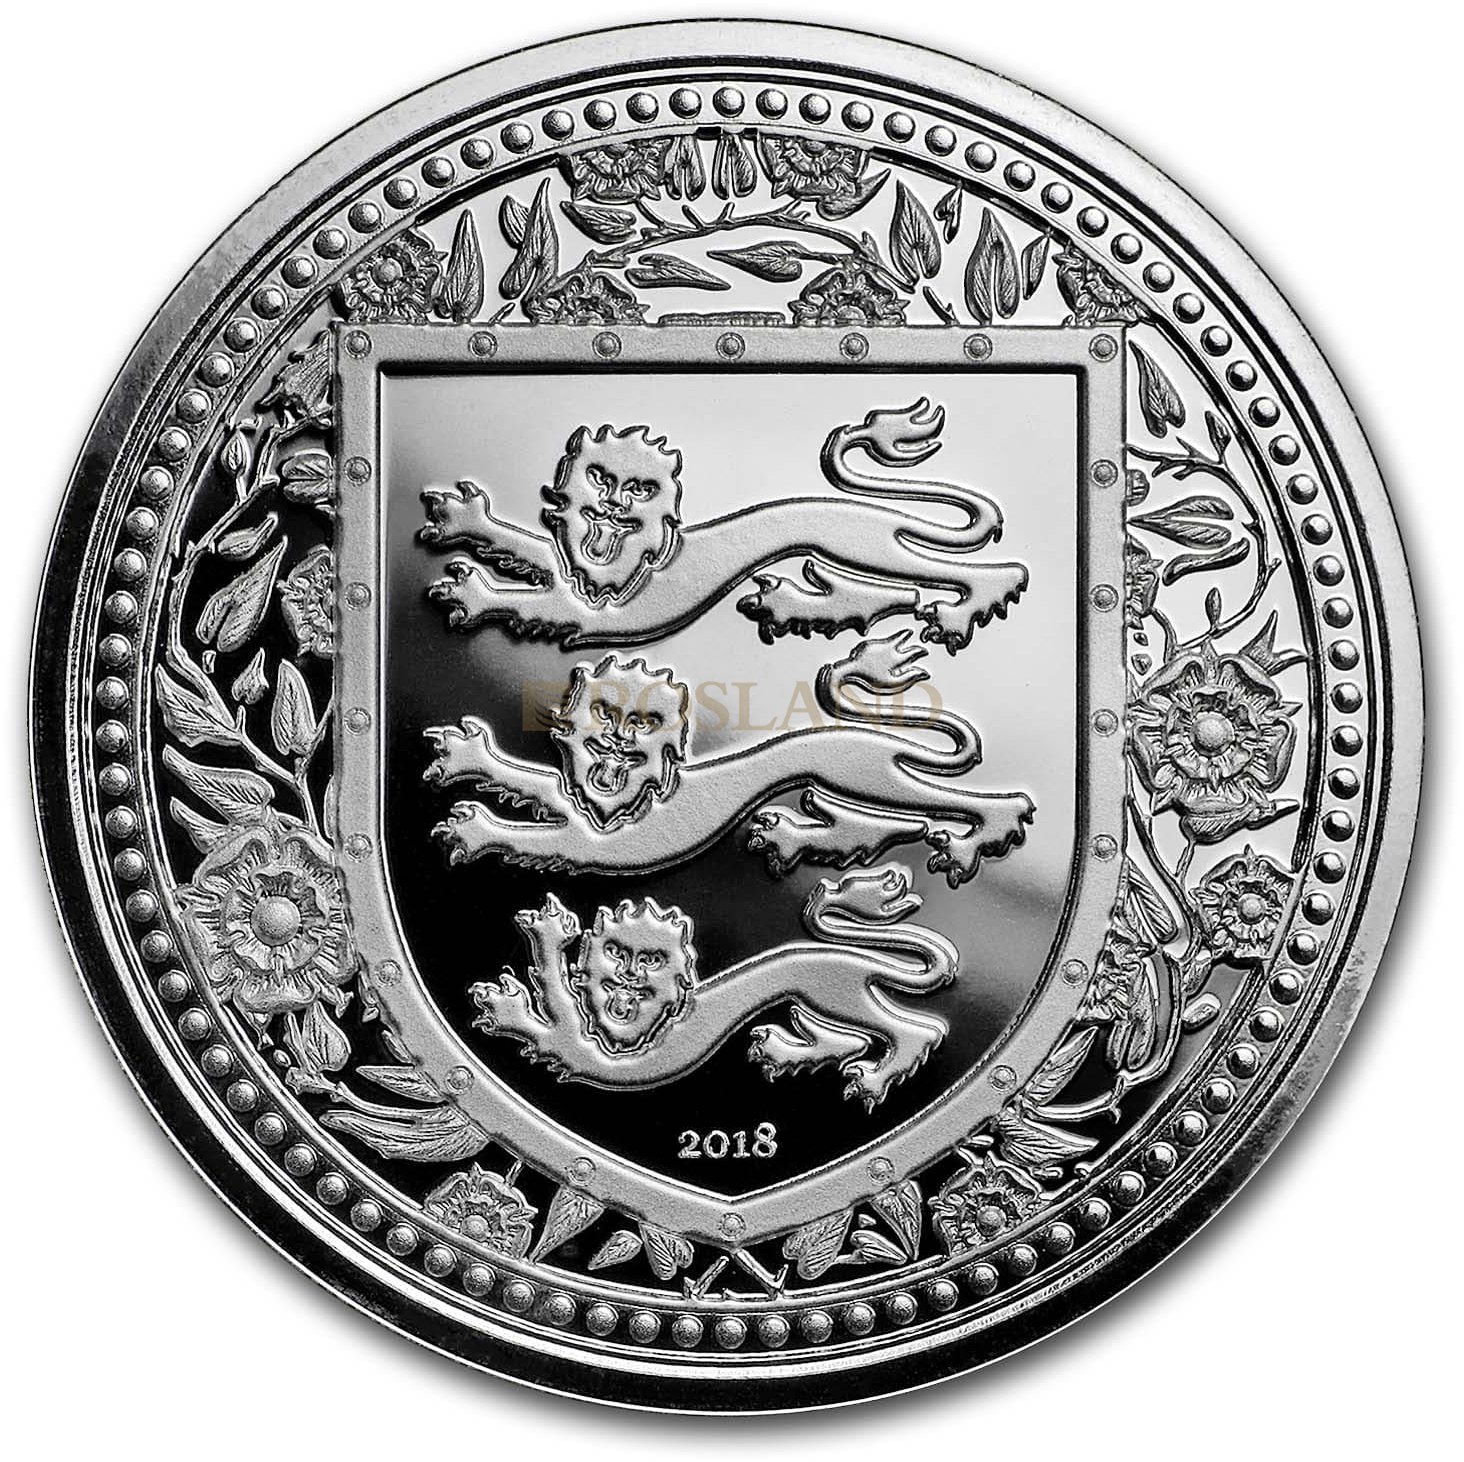 1 Unze Silbermünze Royal Arms of England 2018